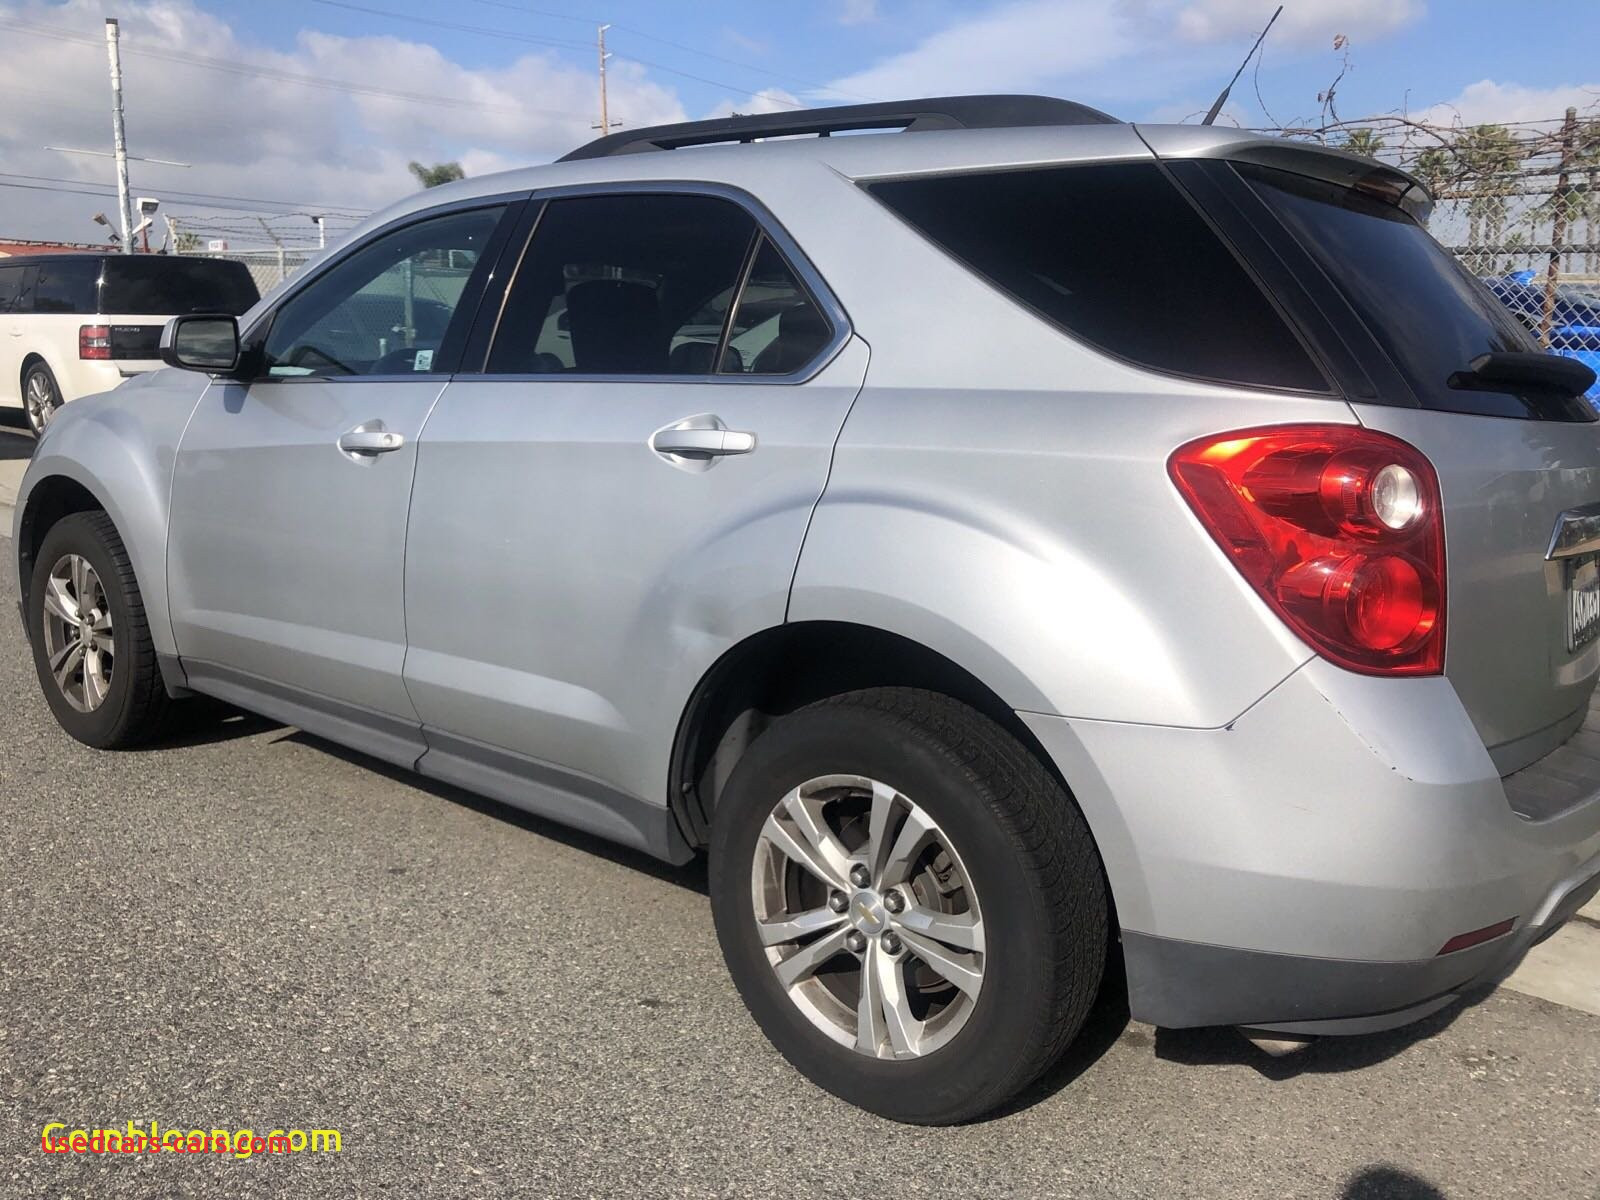 Used Cars for Sale $10000 by Owner Awesome Fresh Cars for Sale by Owner Near Me Under